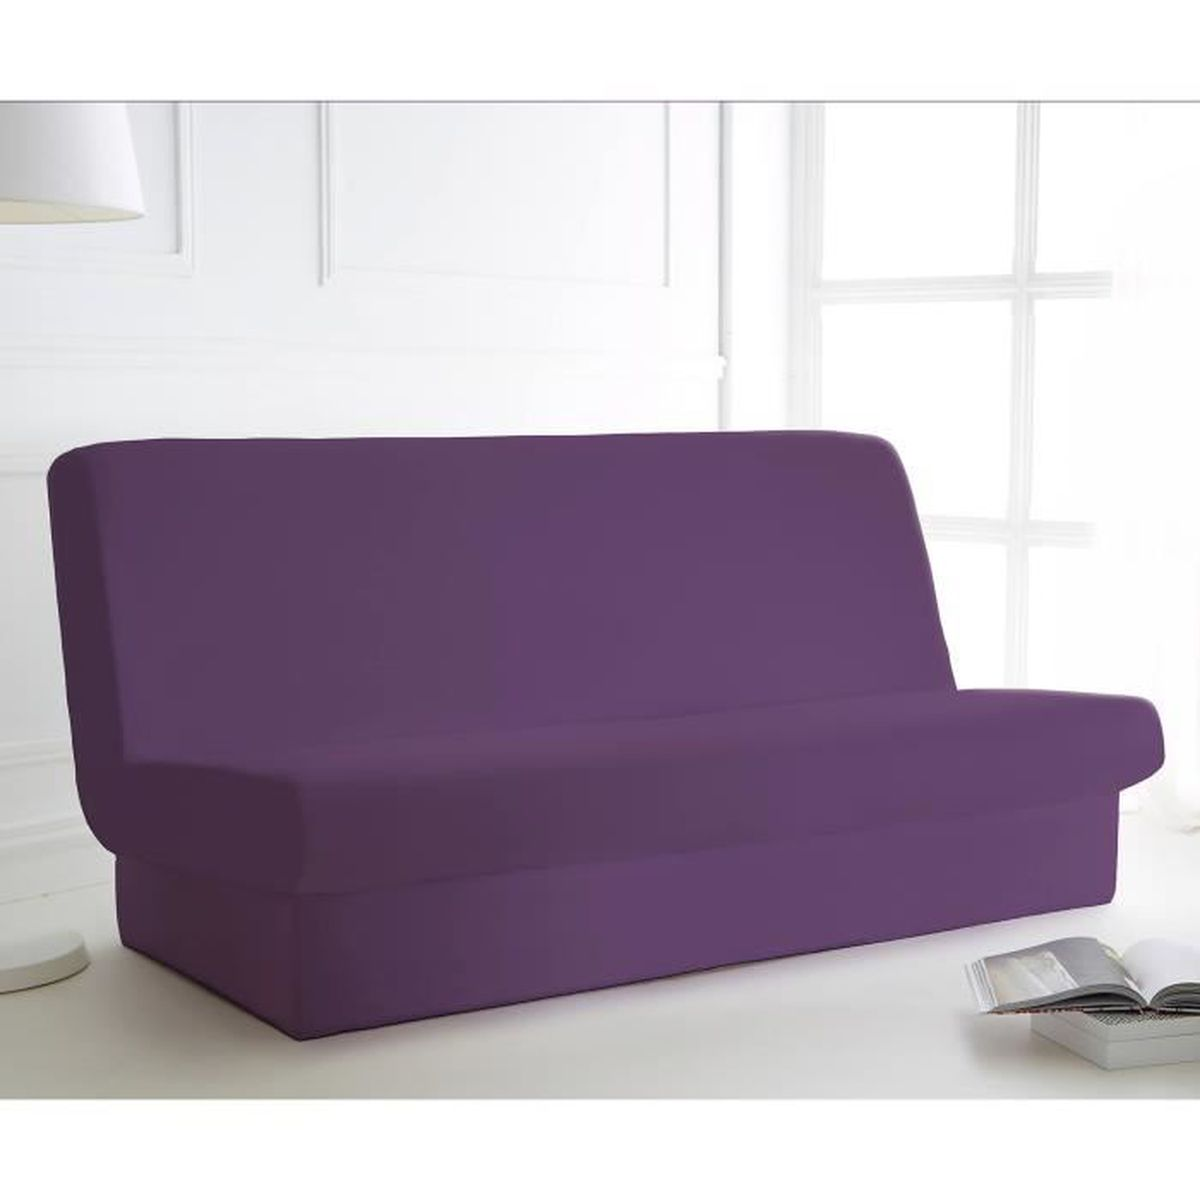 Housse Clic Clac Unie Bande Socle Deep Purple Design